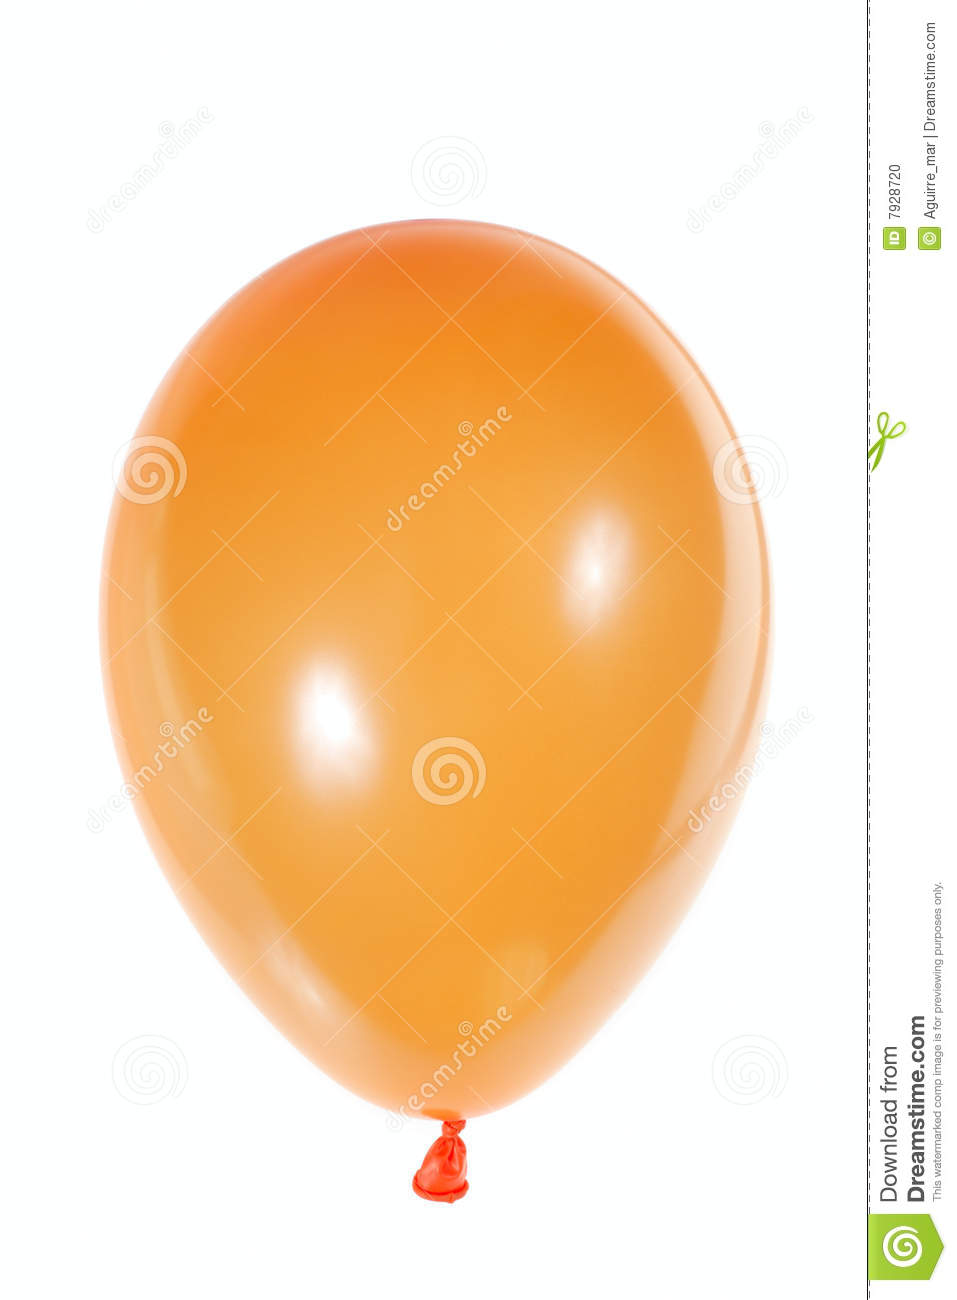 Ballon gonflable